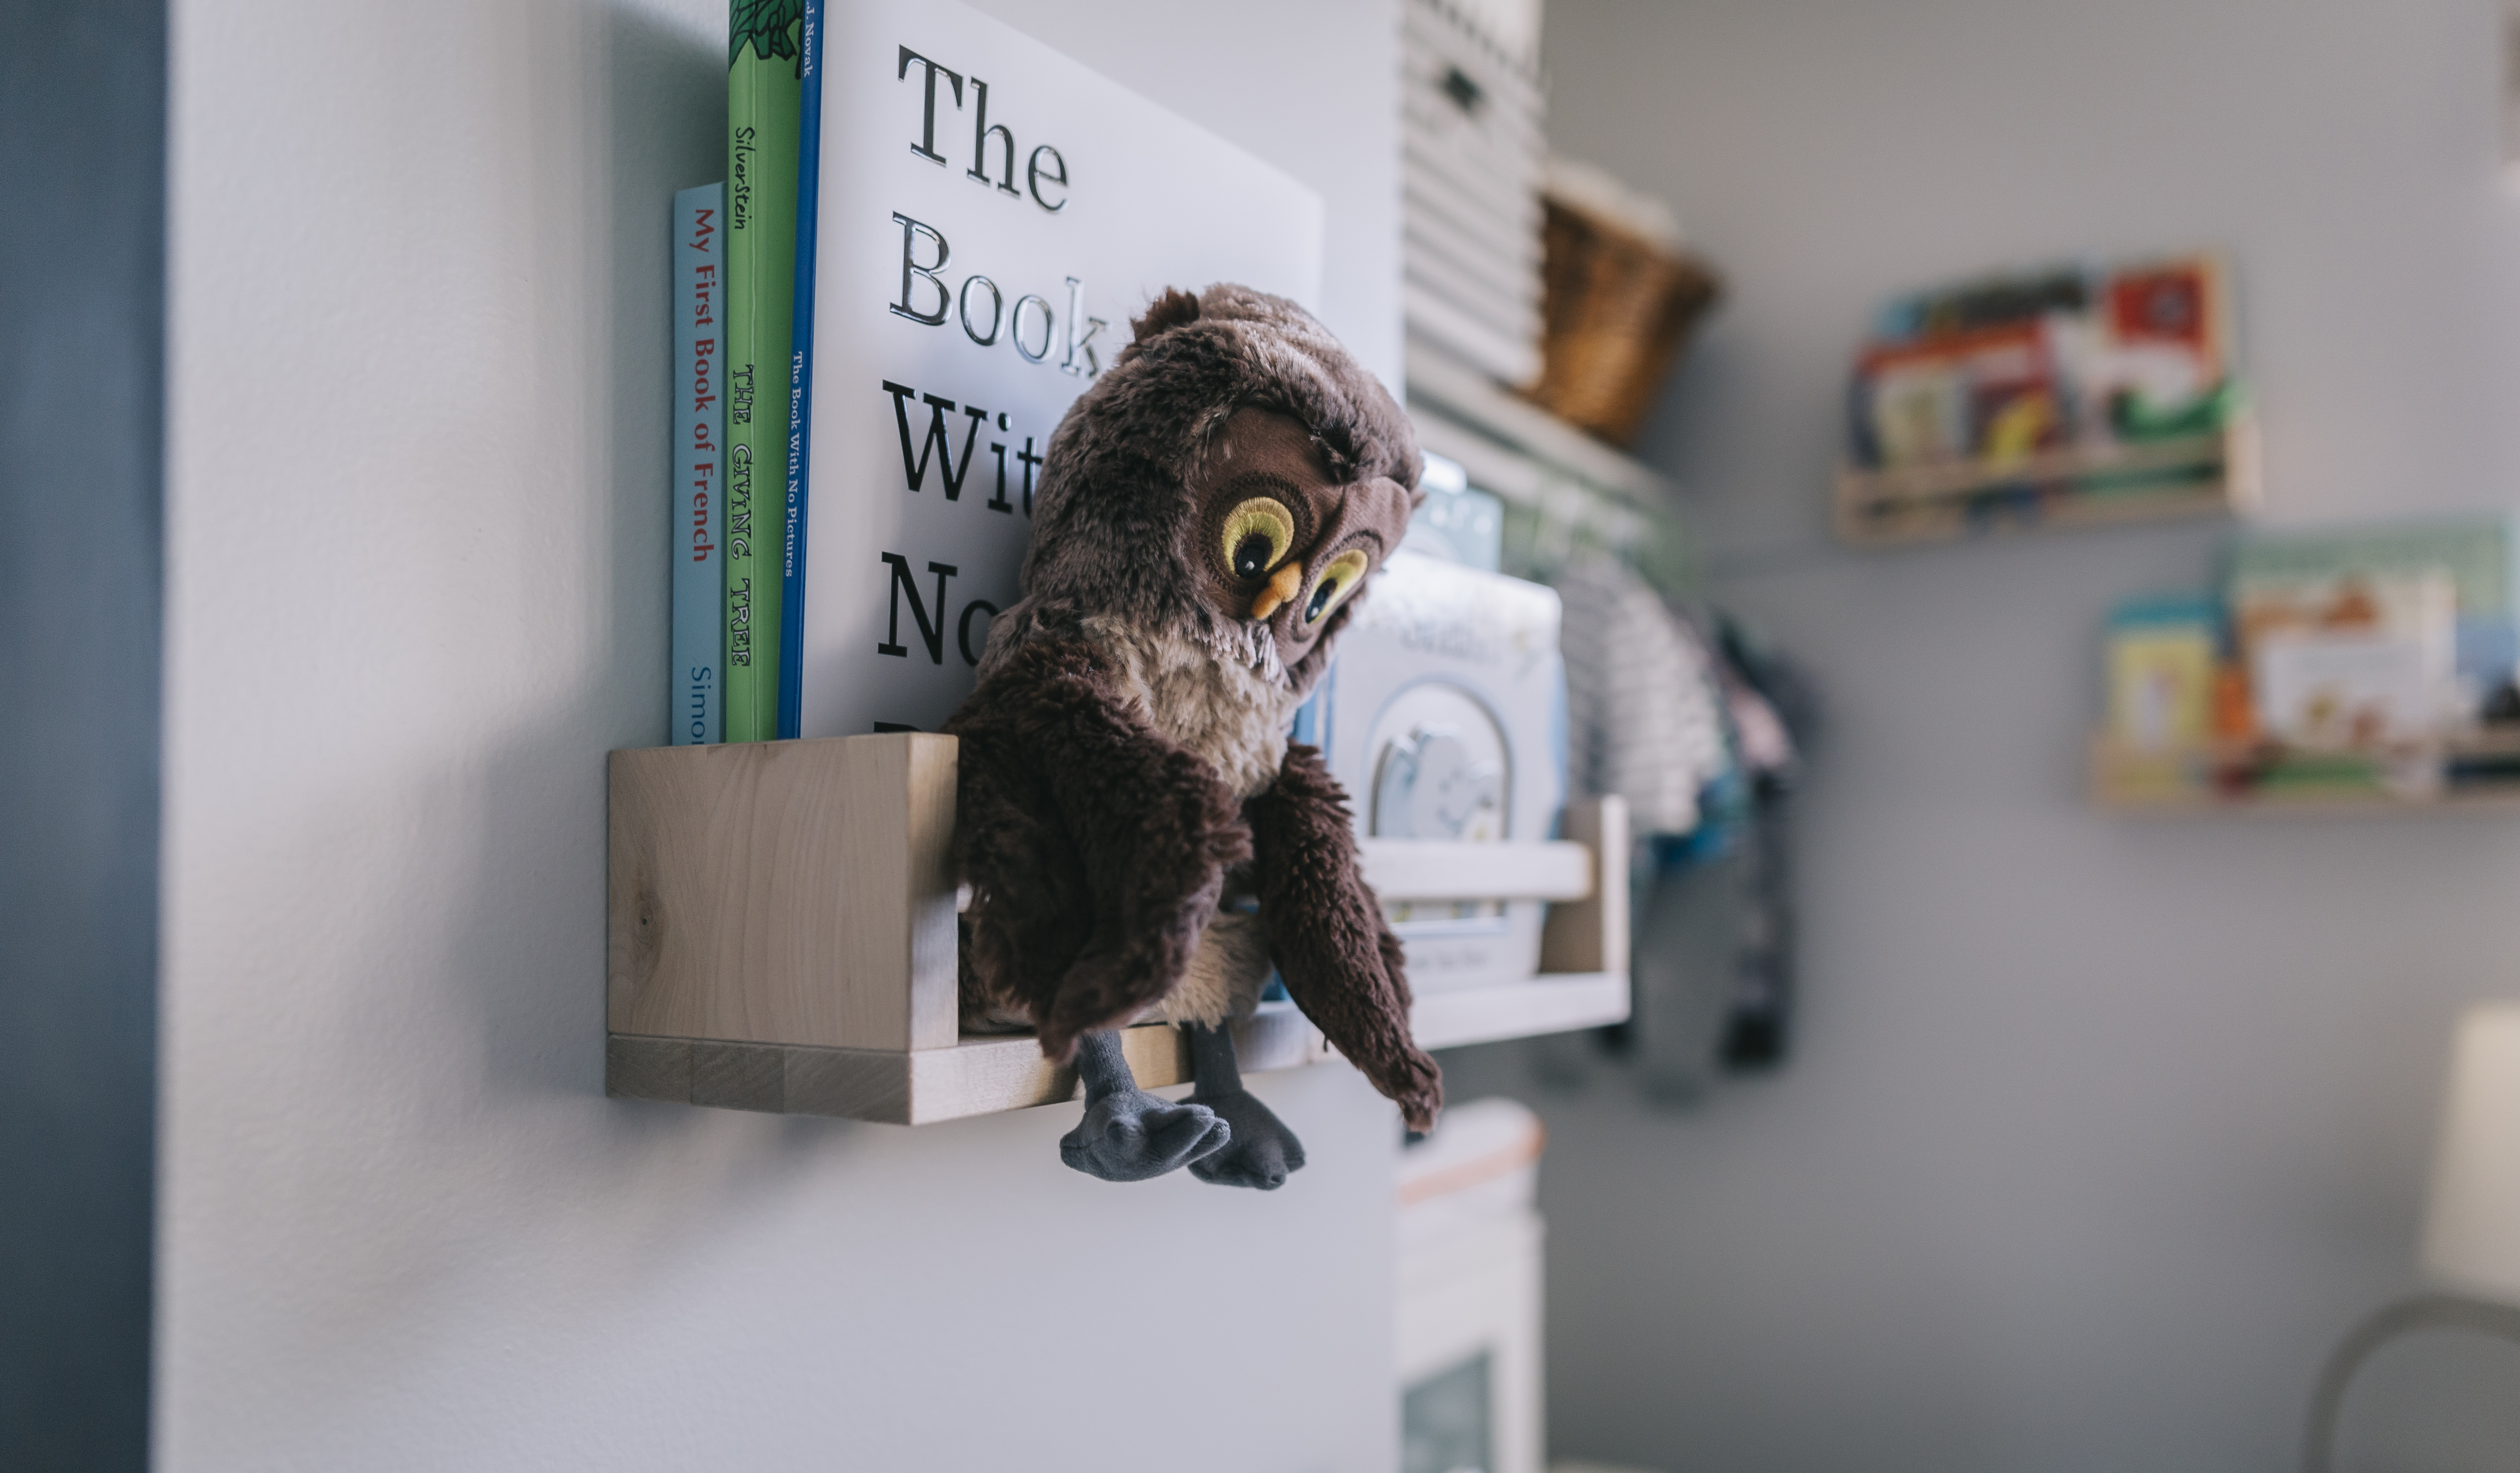 Bookshelf with owl and books- The Unfit Dad